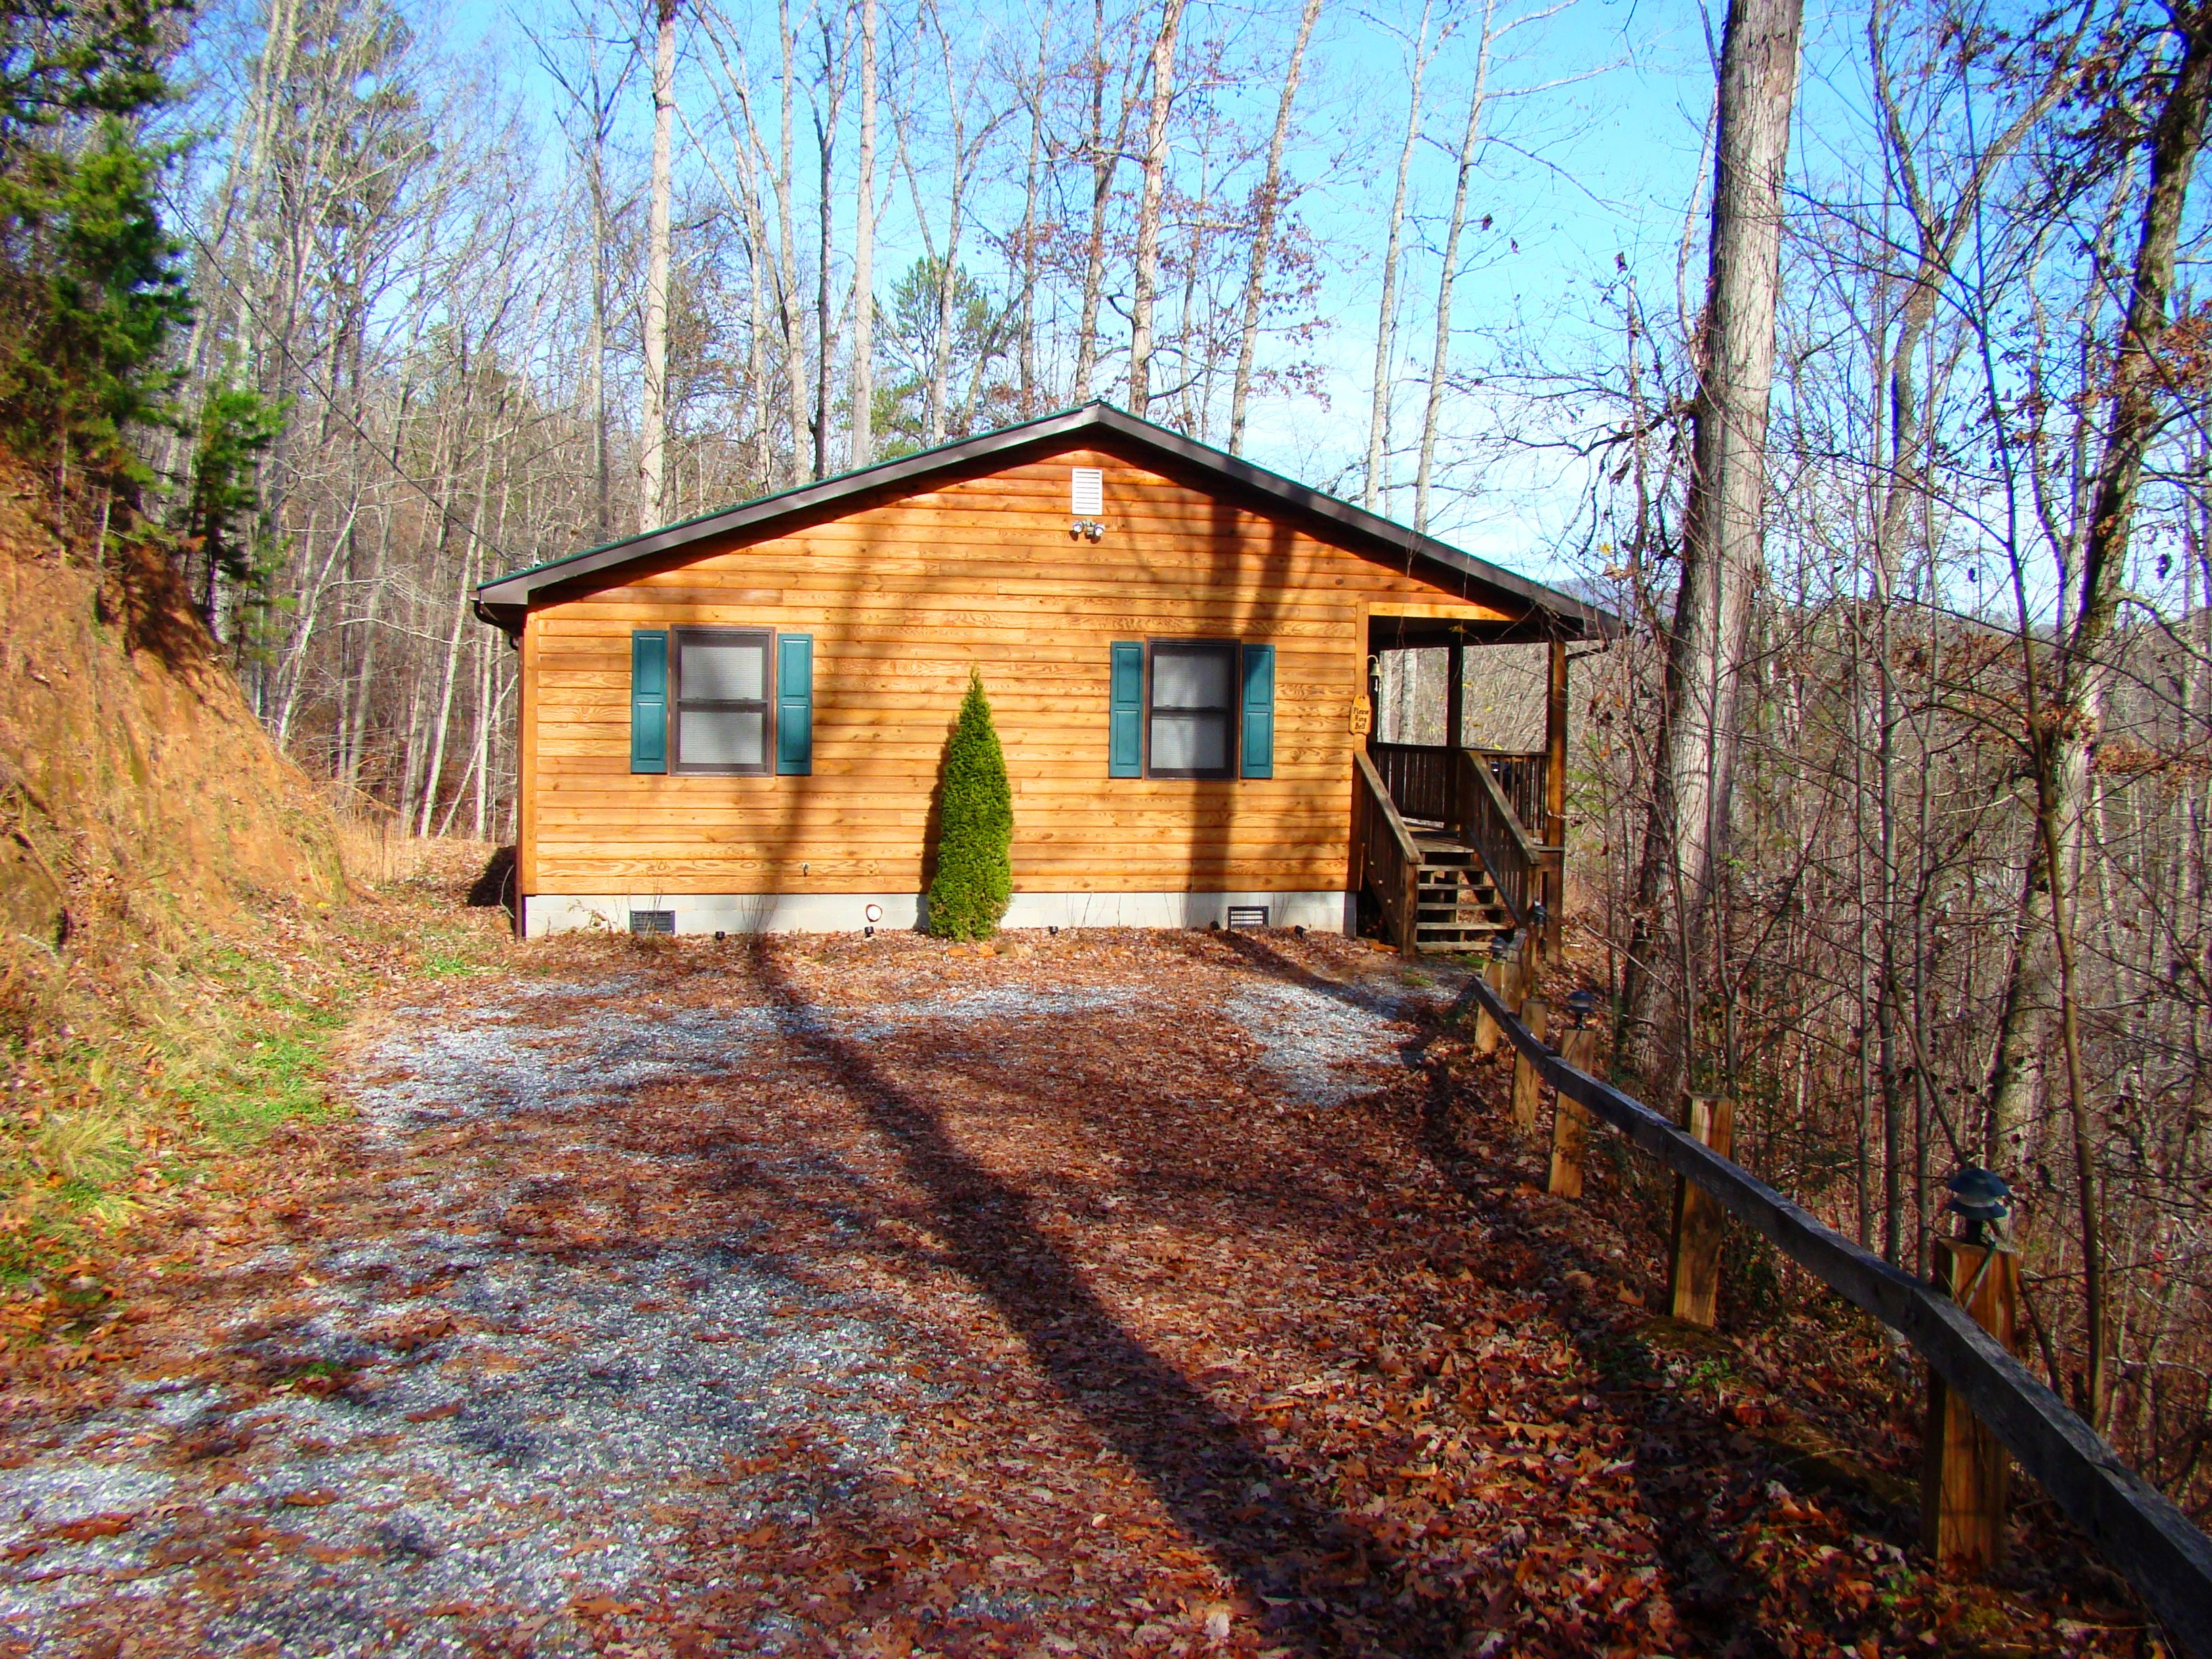 carolina br cabins img wv july boone rented north old bristol rd rentals investments cabin investmentswv